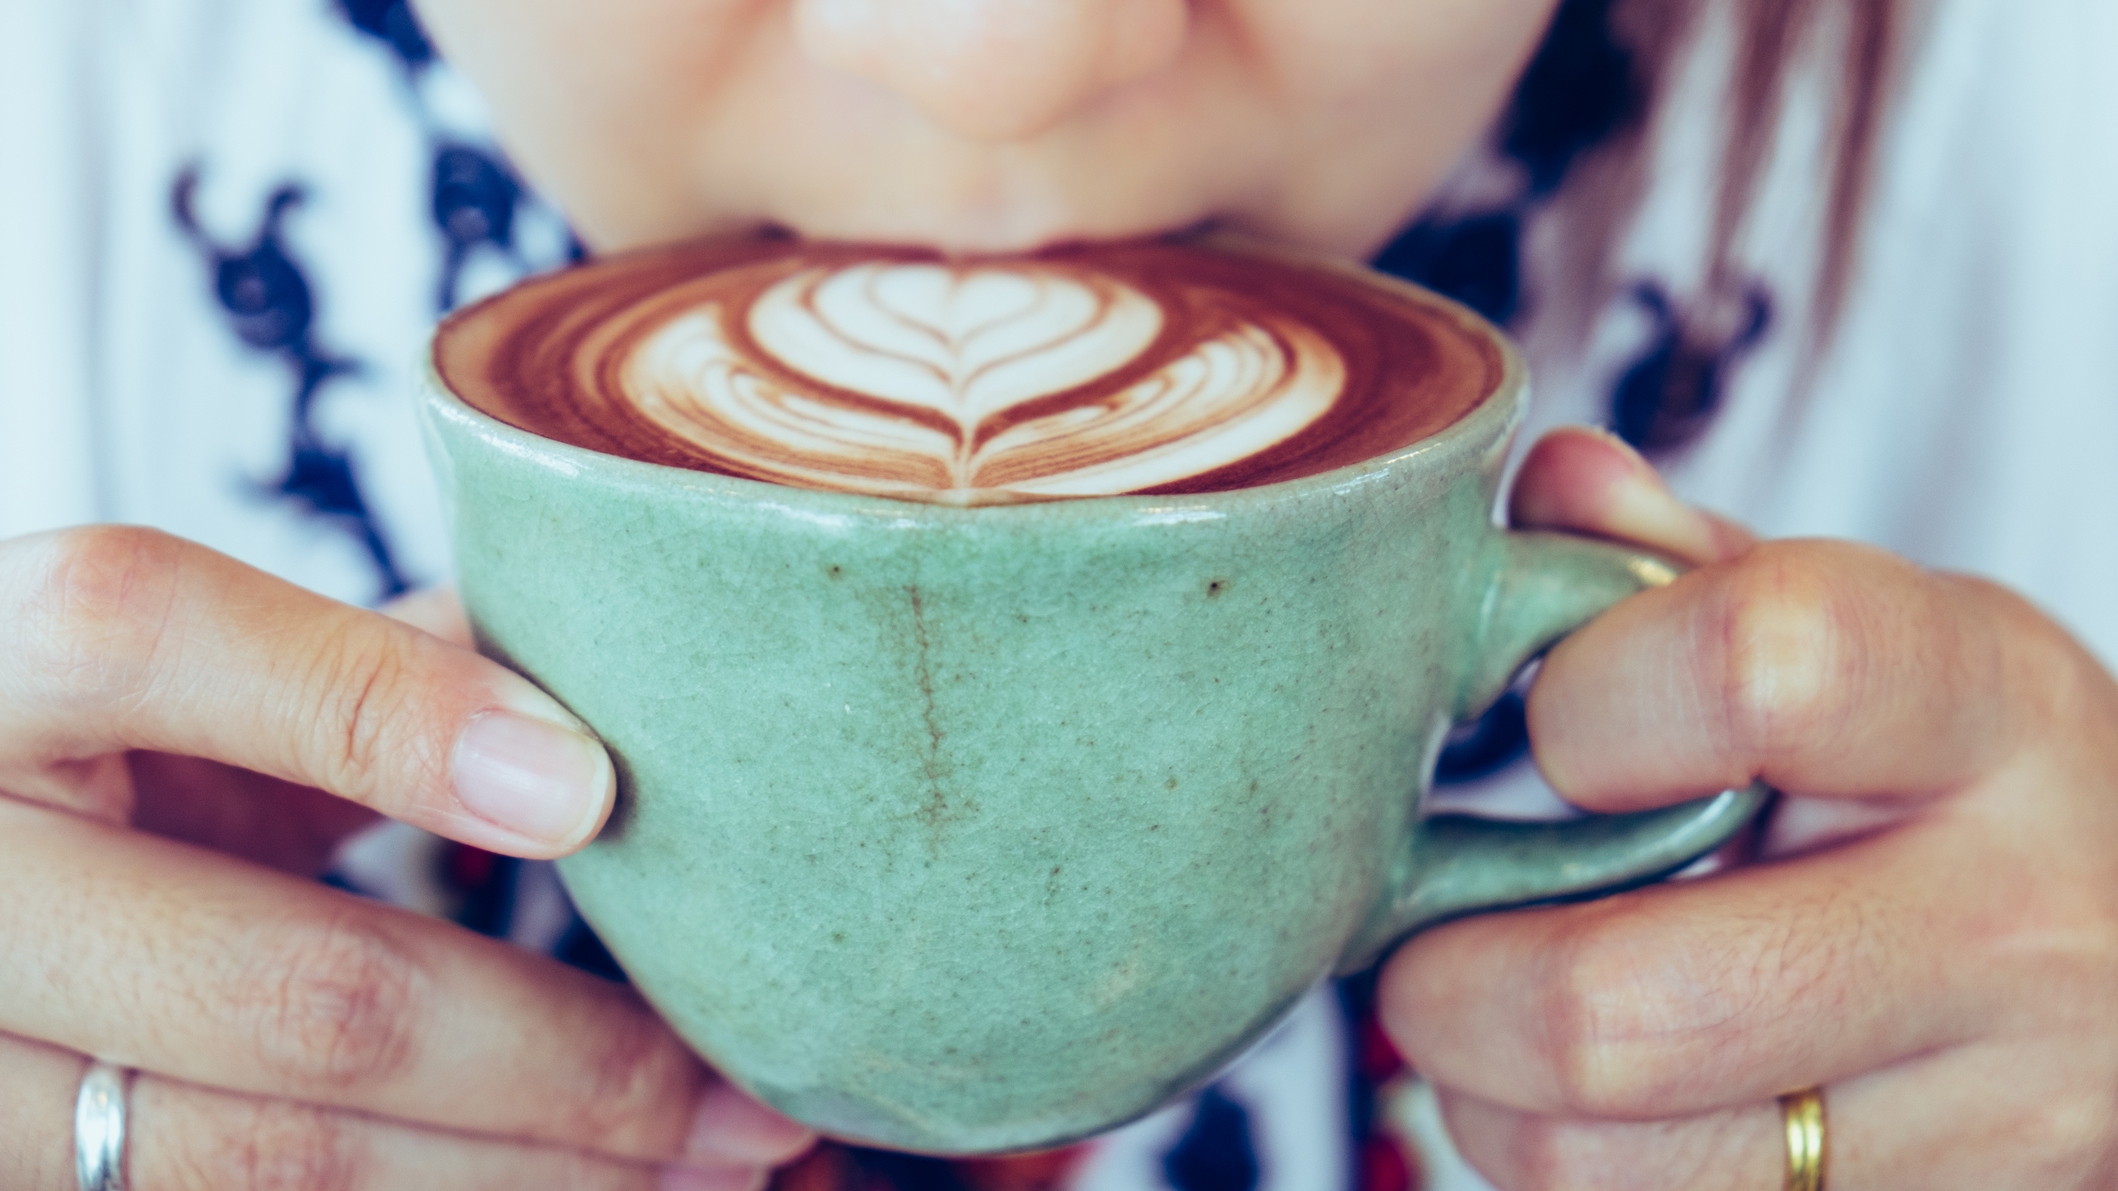 People who drink a lot of coffee live longer